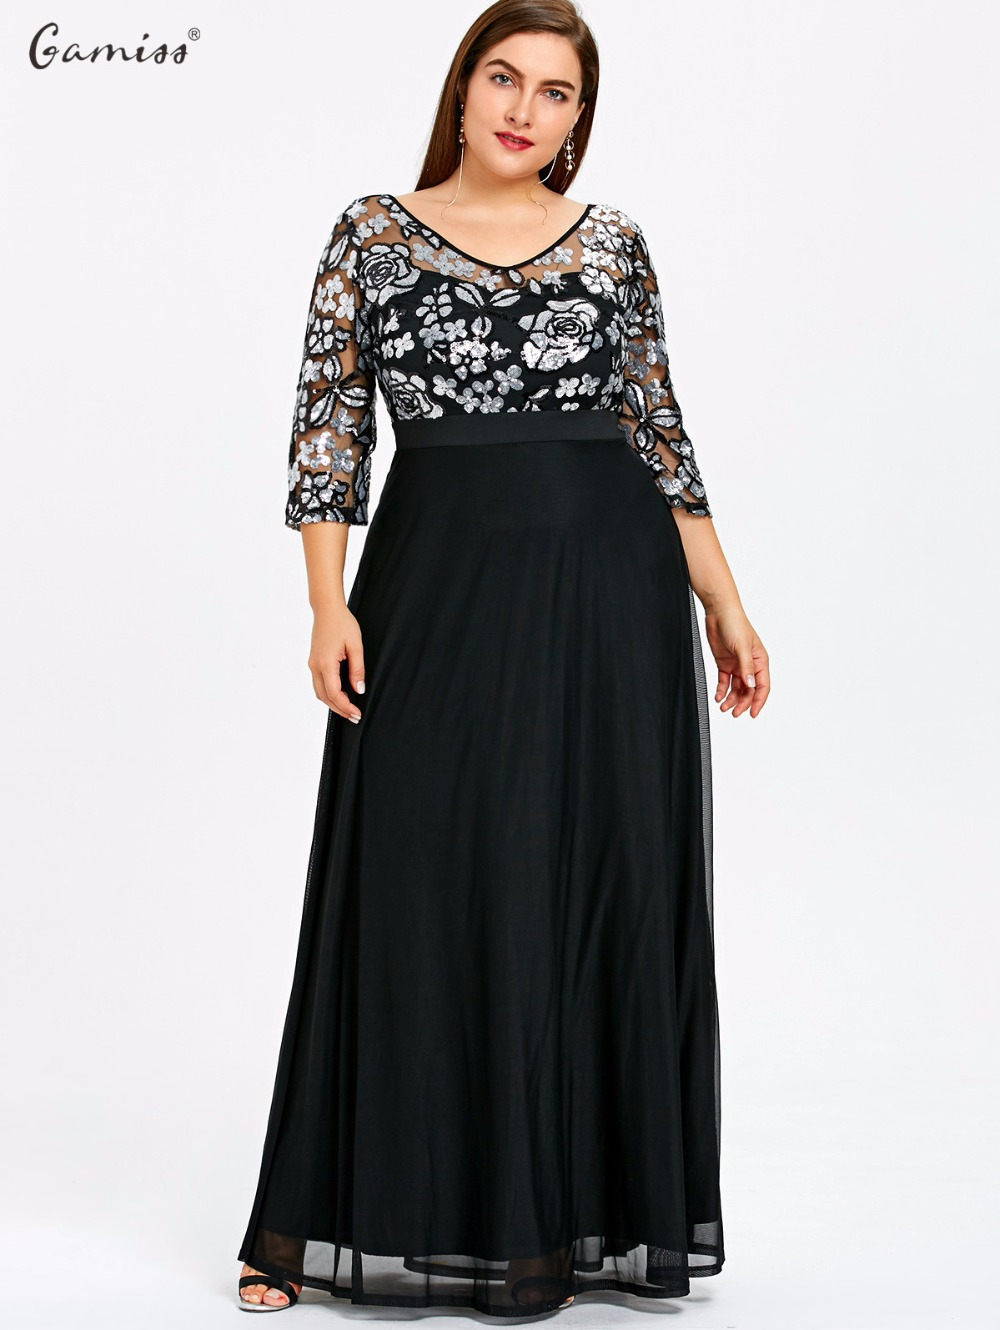 944b35f30a0 שמלות - Gamiss Plus Size Sequined Floral Maxi Prom Women Party ...